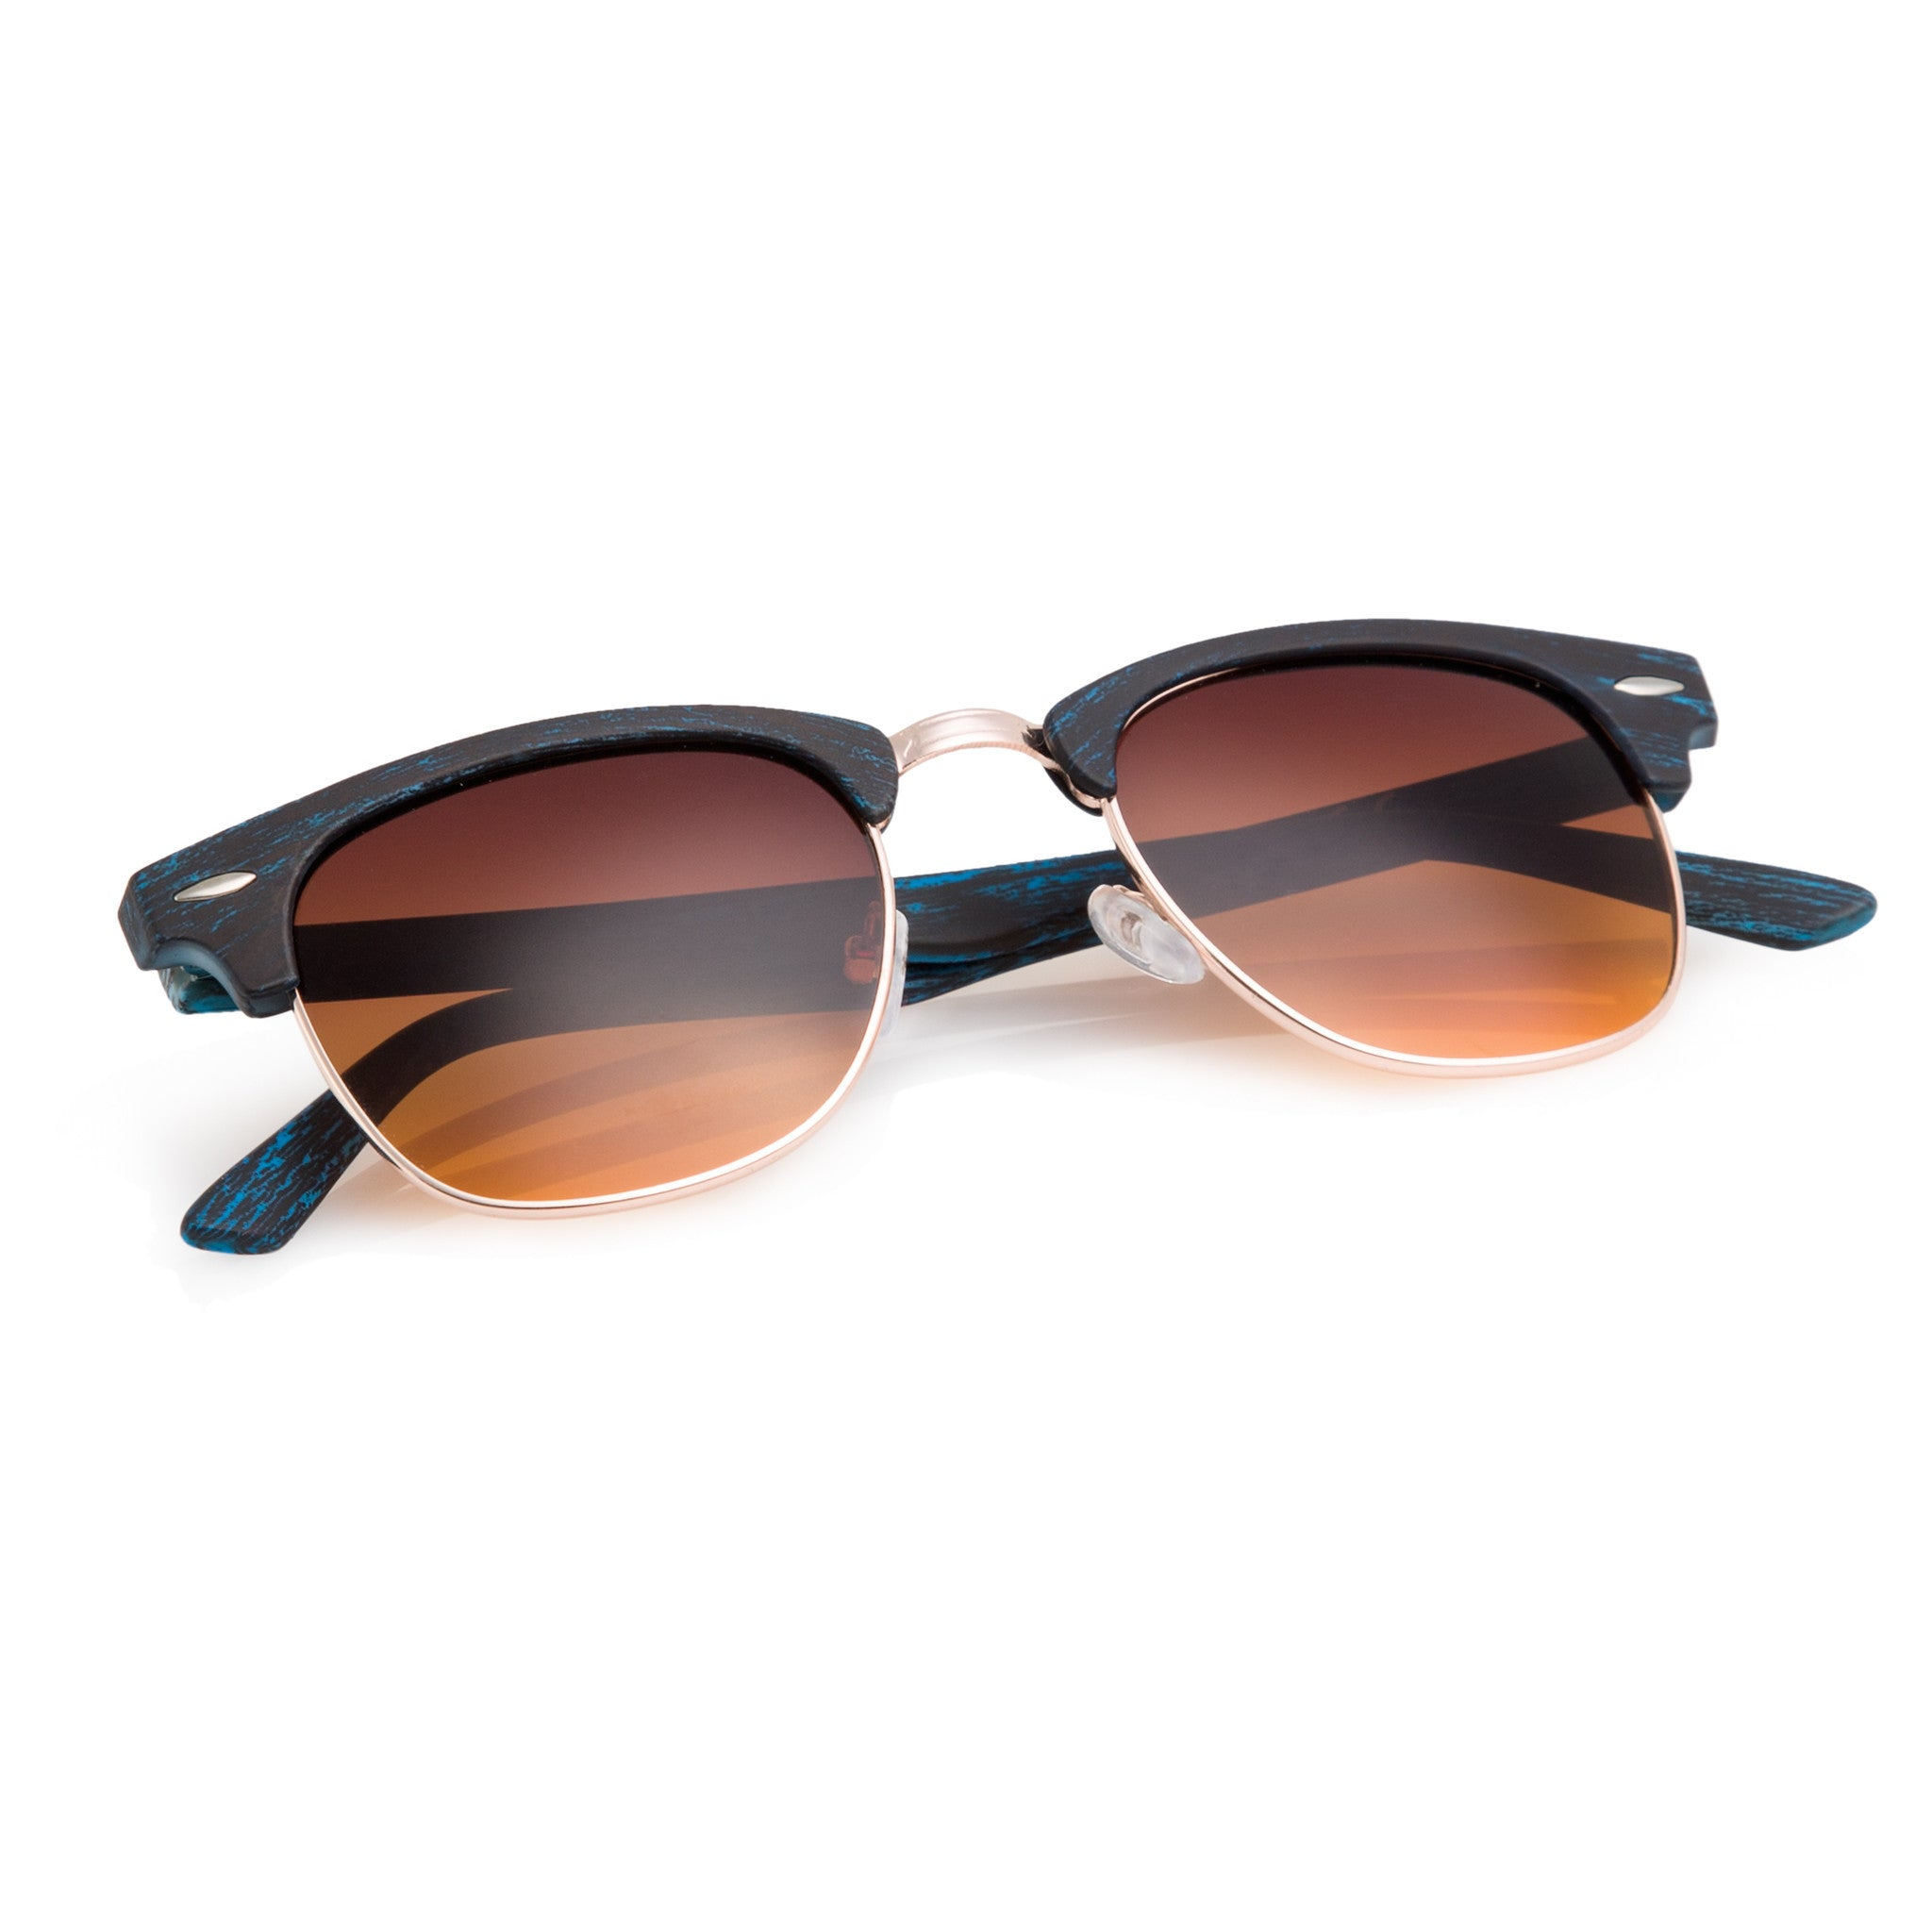 Unisex Sunglasses ''Sunset'' Dasoon Vision - en.brands4all.com.gr - 3